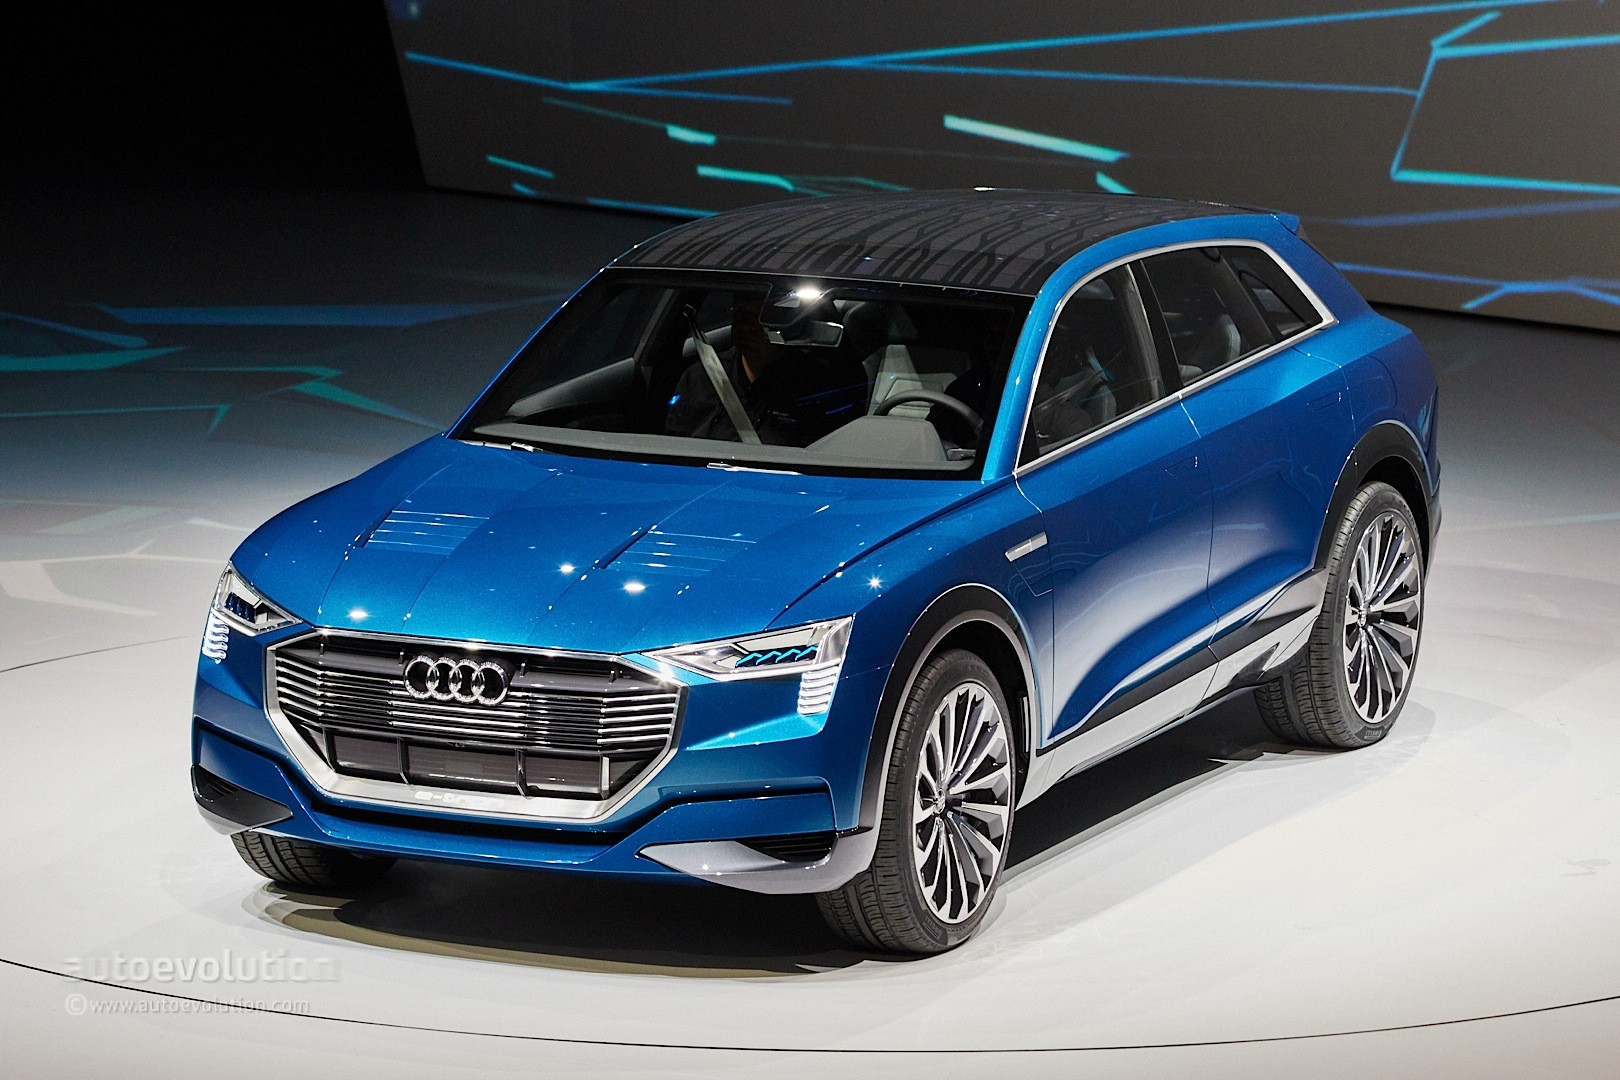 reservations open in norway for the 2018 audi e tron electric suv autoevolution. Black Bedroom Furniture Sets. Home Design Ideas